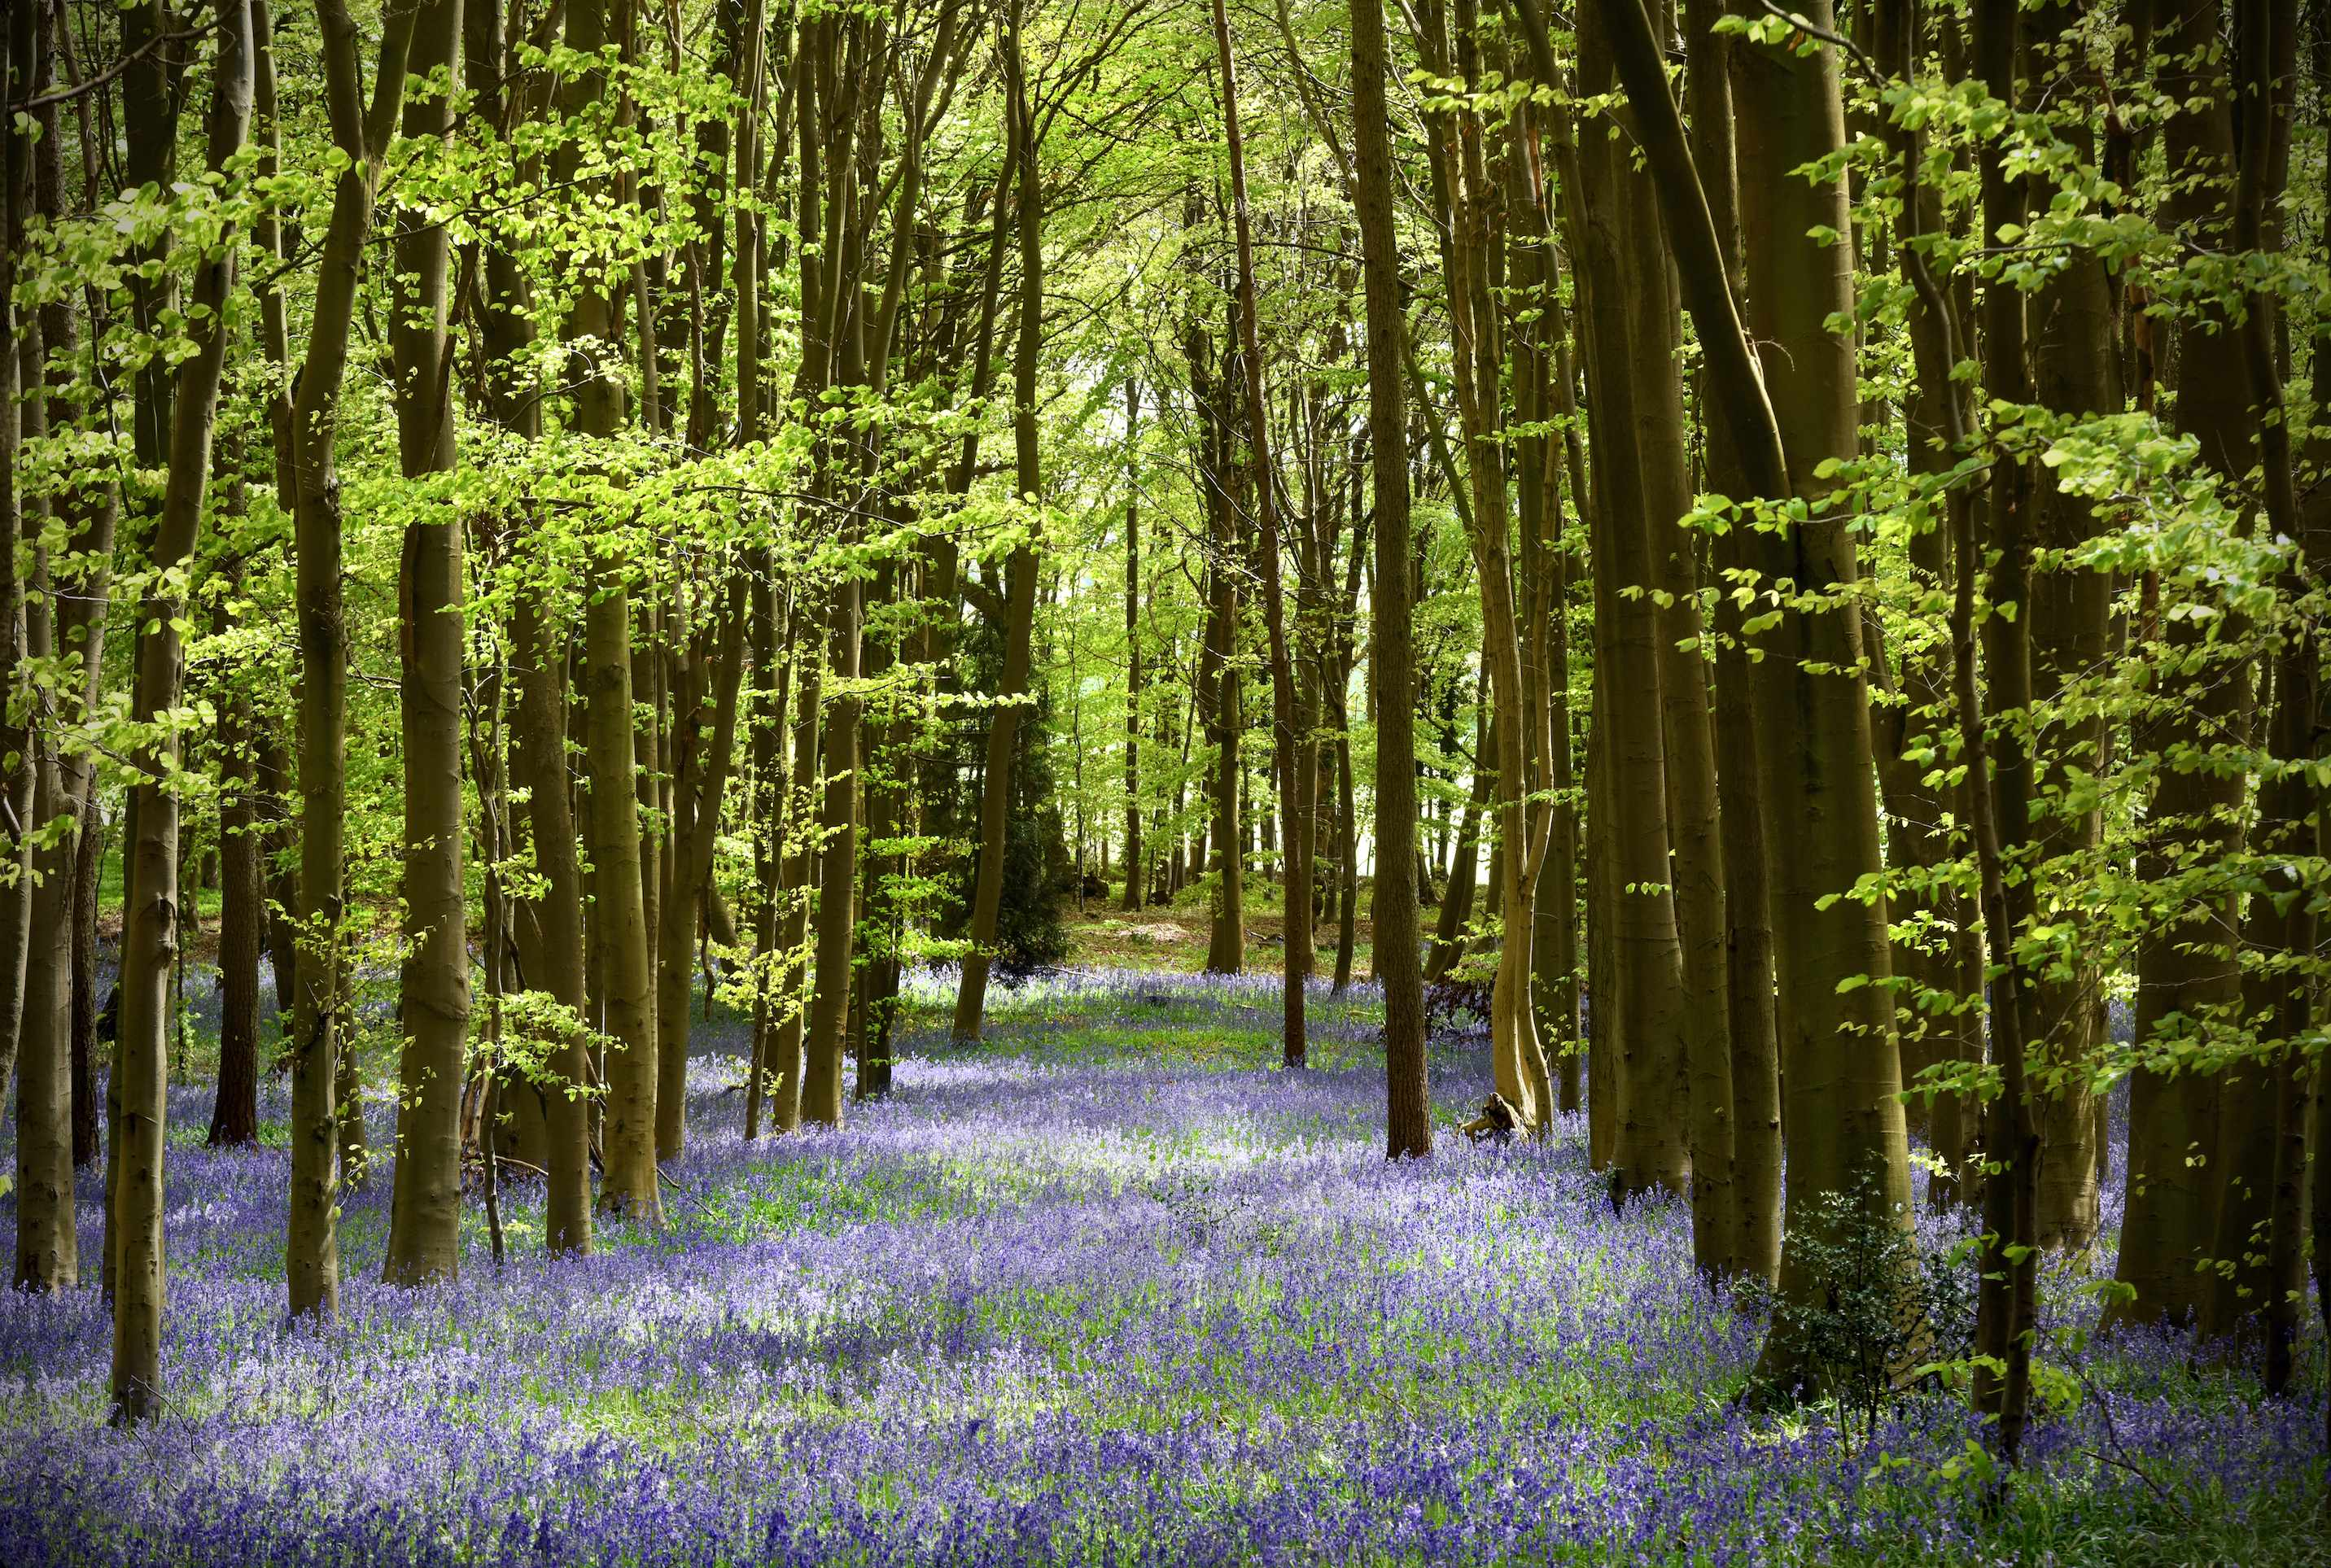 Wild bluebells carpet a woodland glade in England during spring